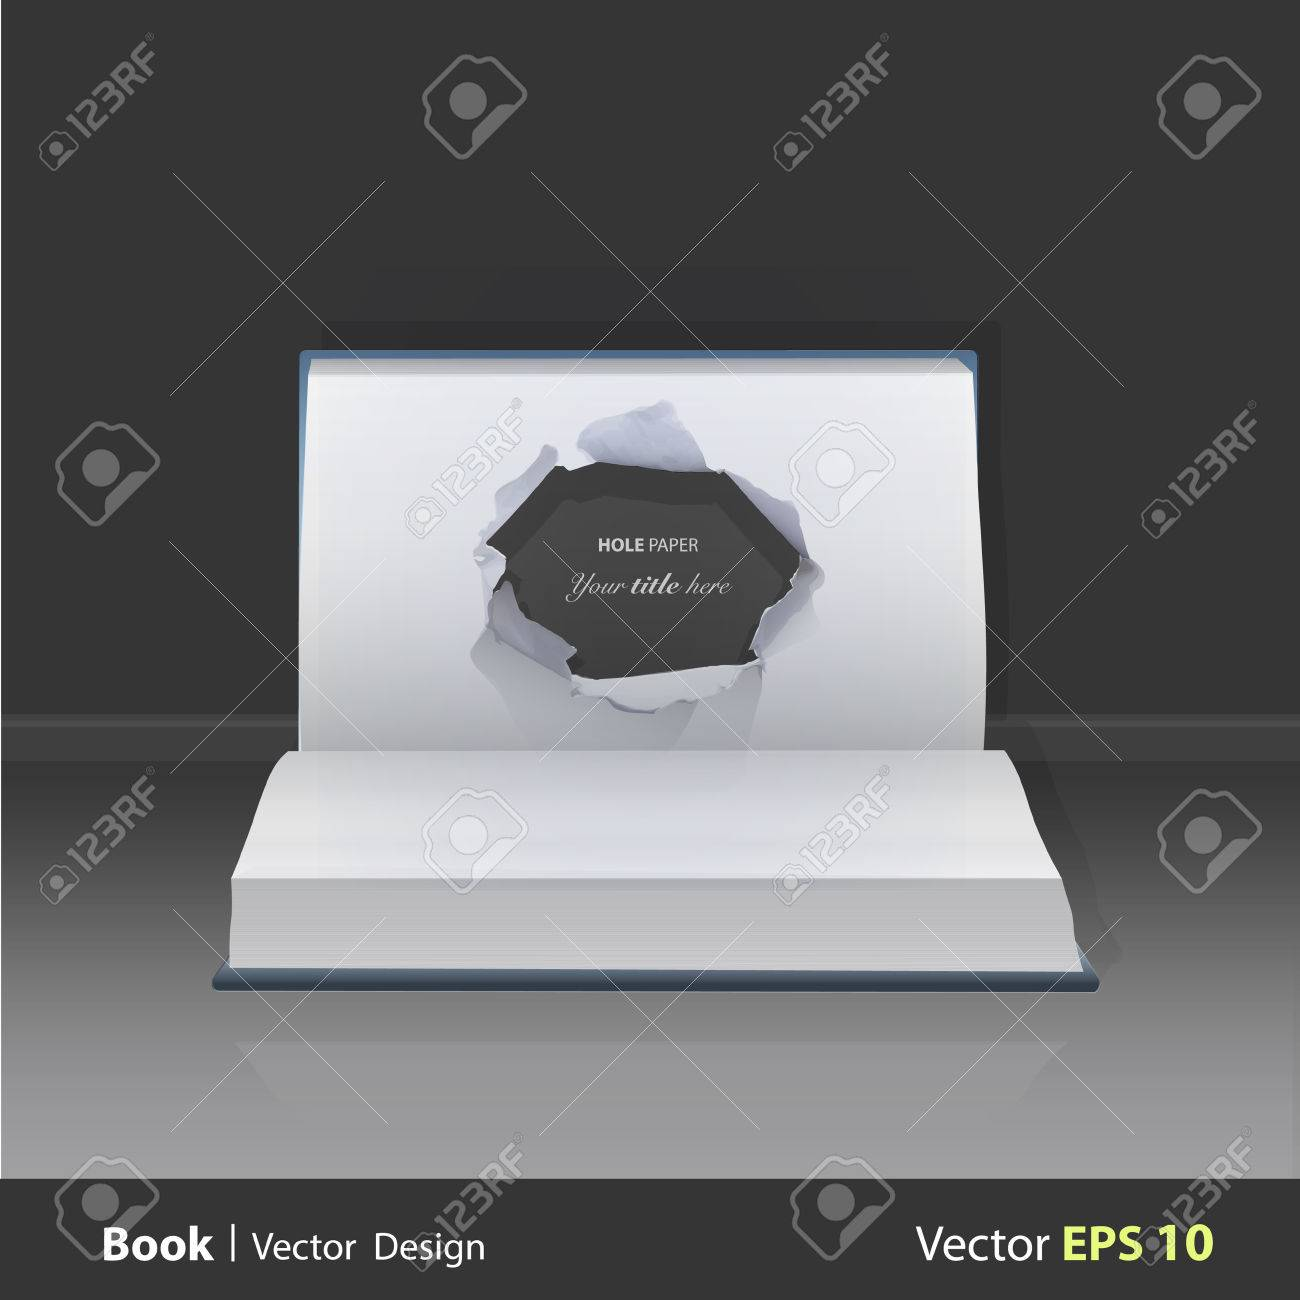 hole paper in popup book. Vector illustration. Stock Vector - 23462349